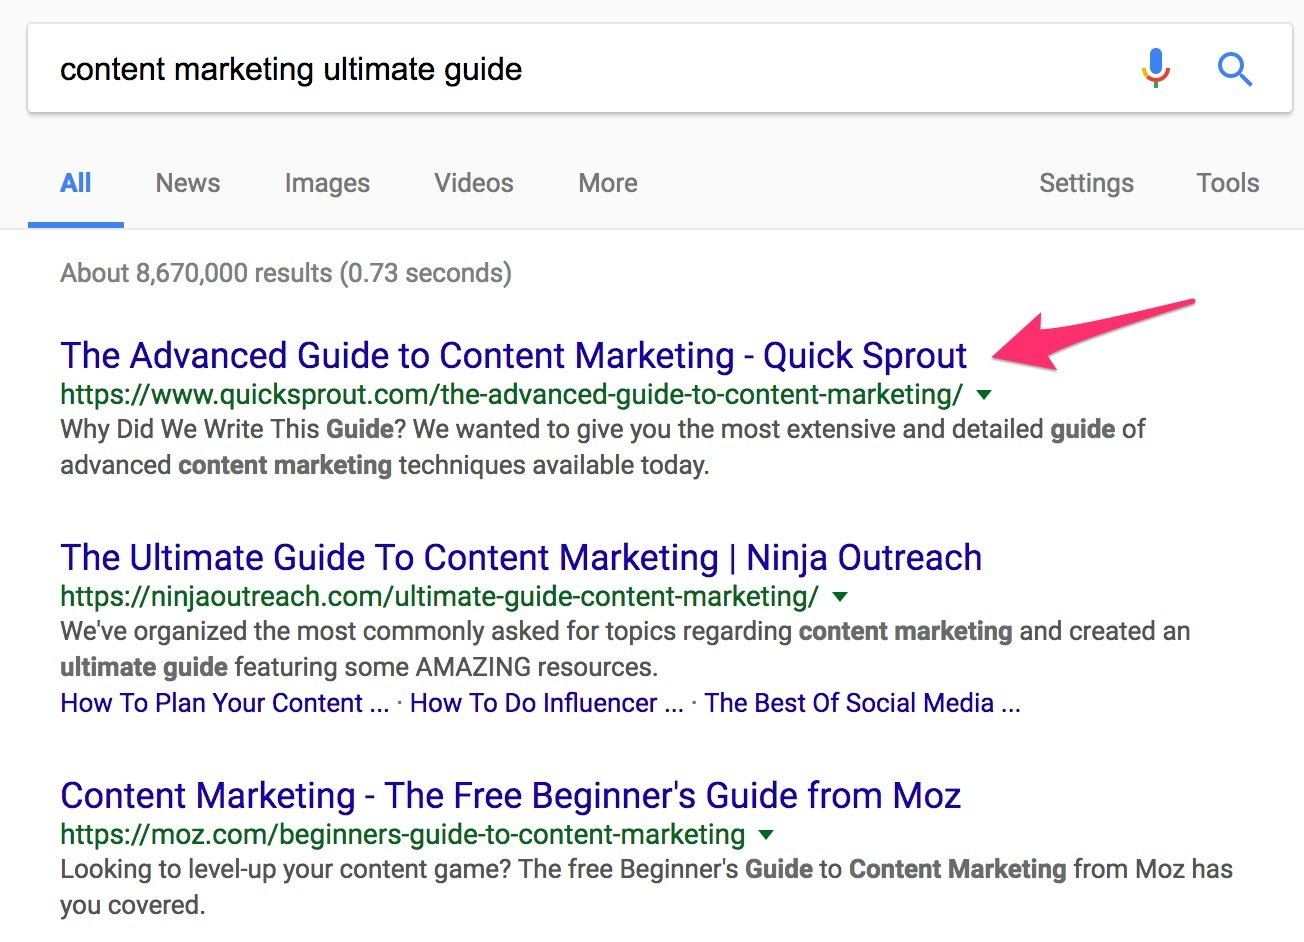 content marketing ultimate guide Google Search